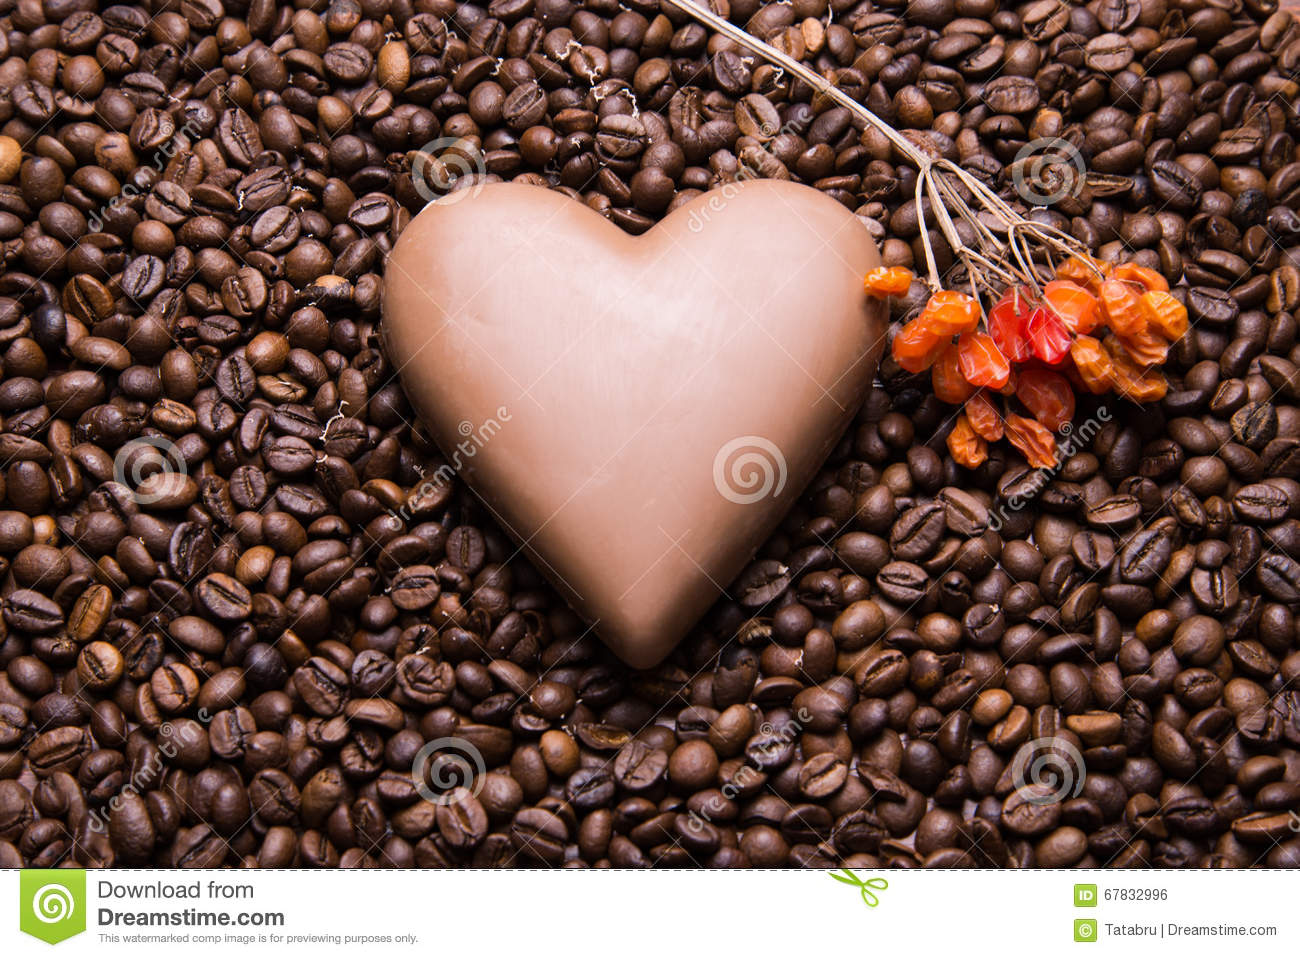 Coffee beans wallpaper with chocolate heart and viburnum berrie